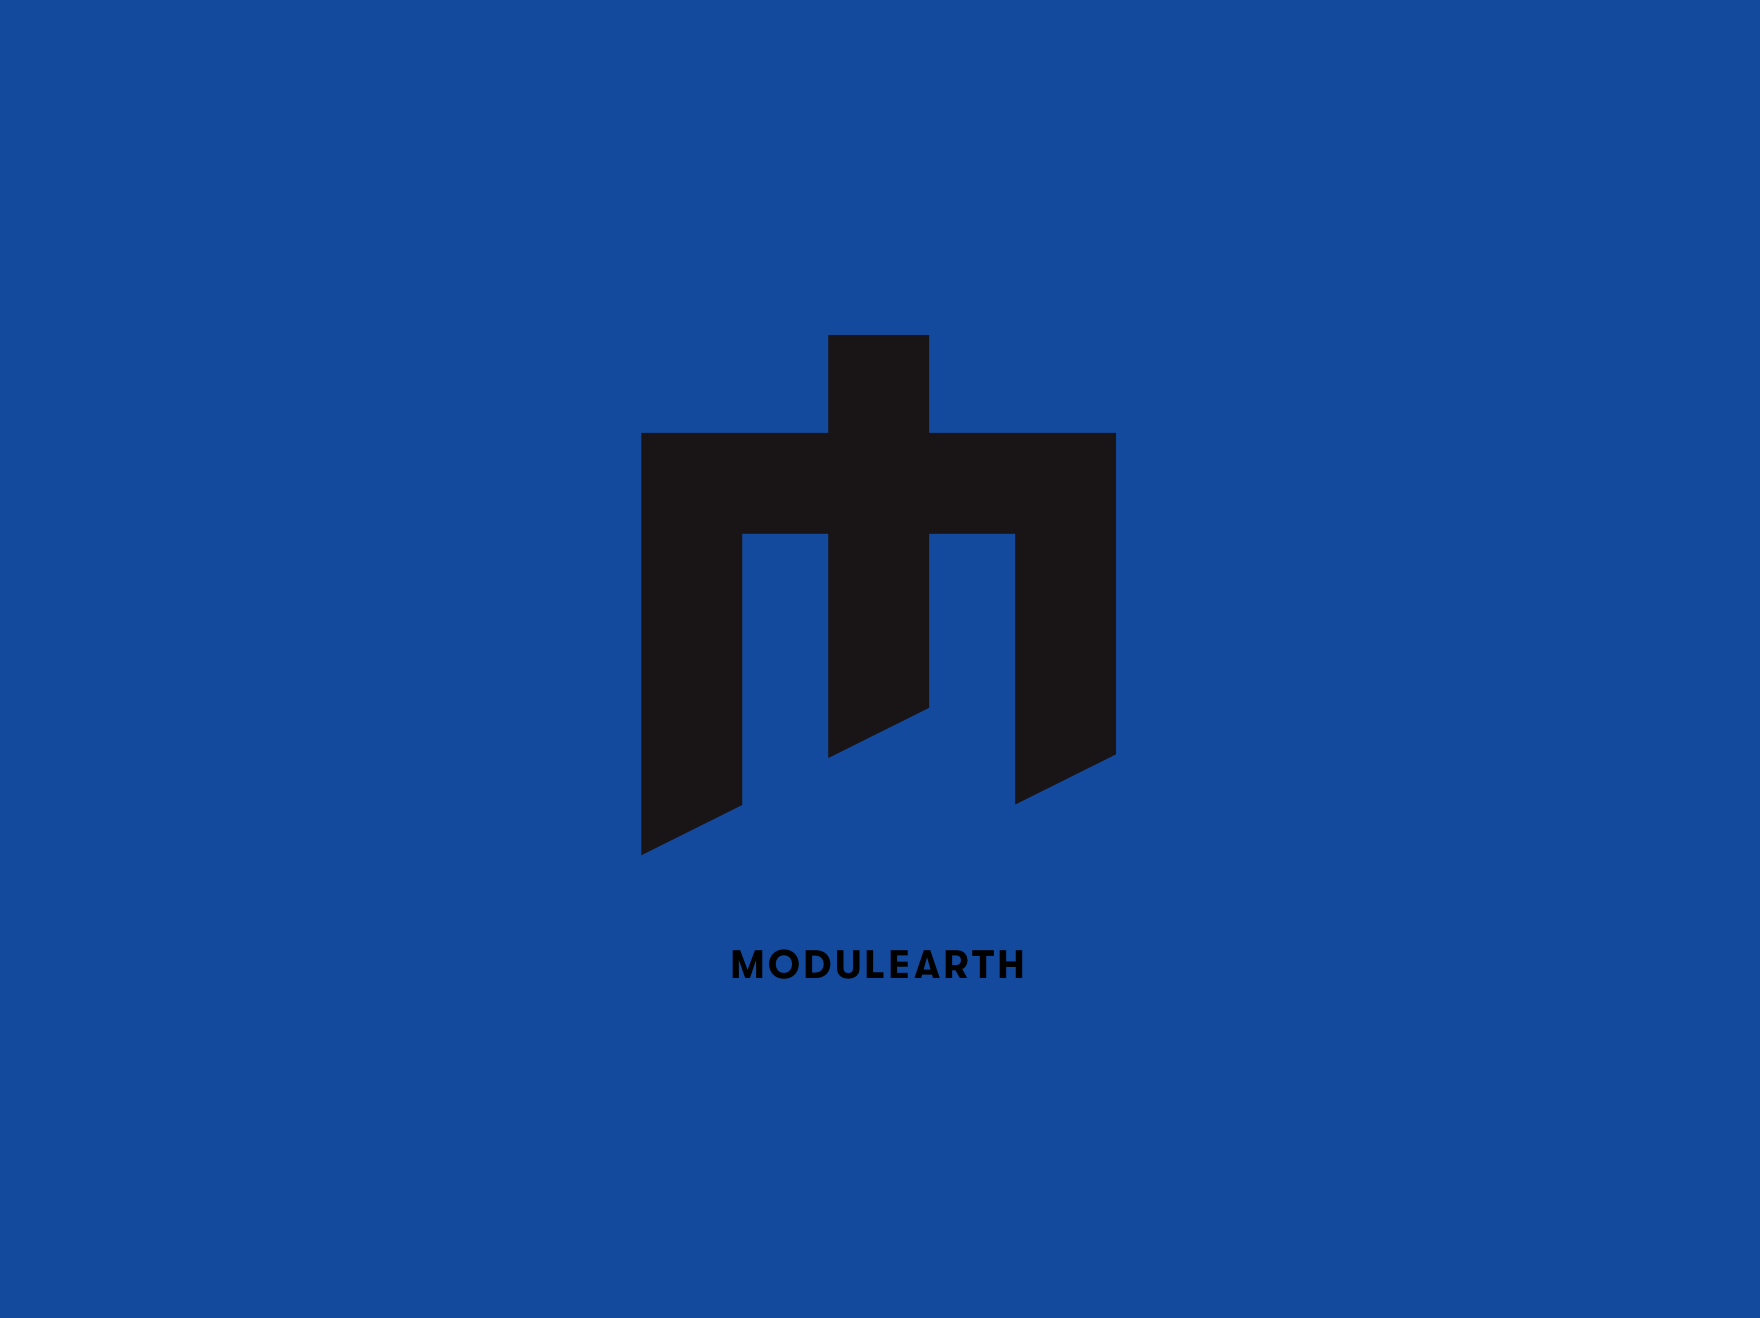 Modulearth